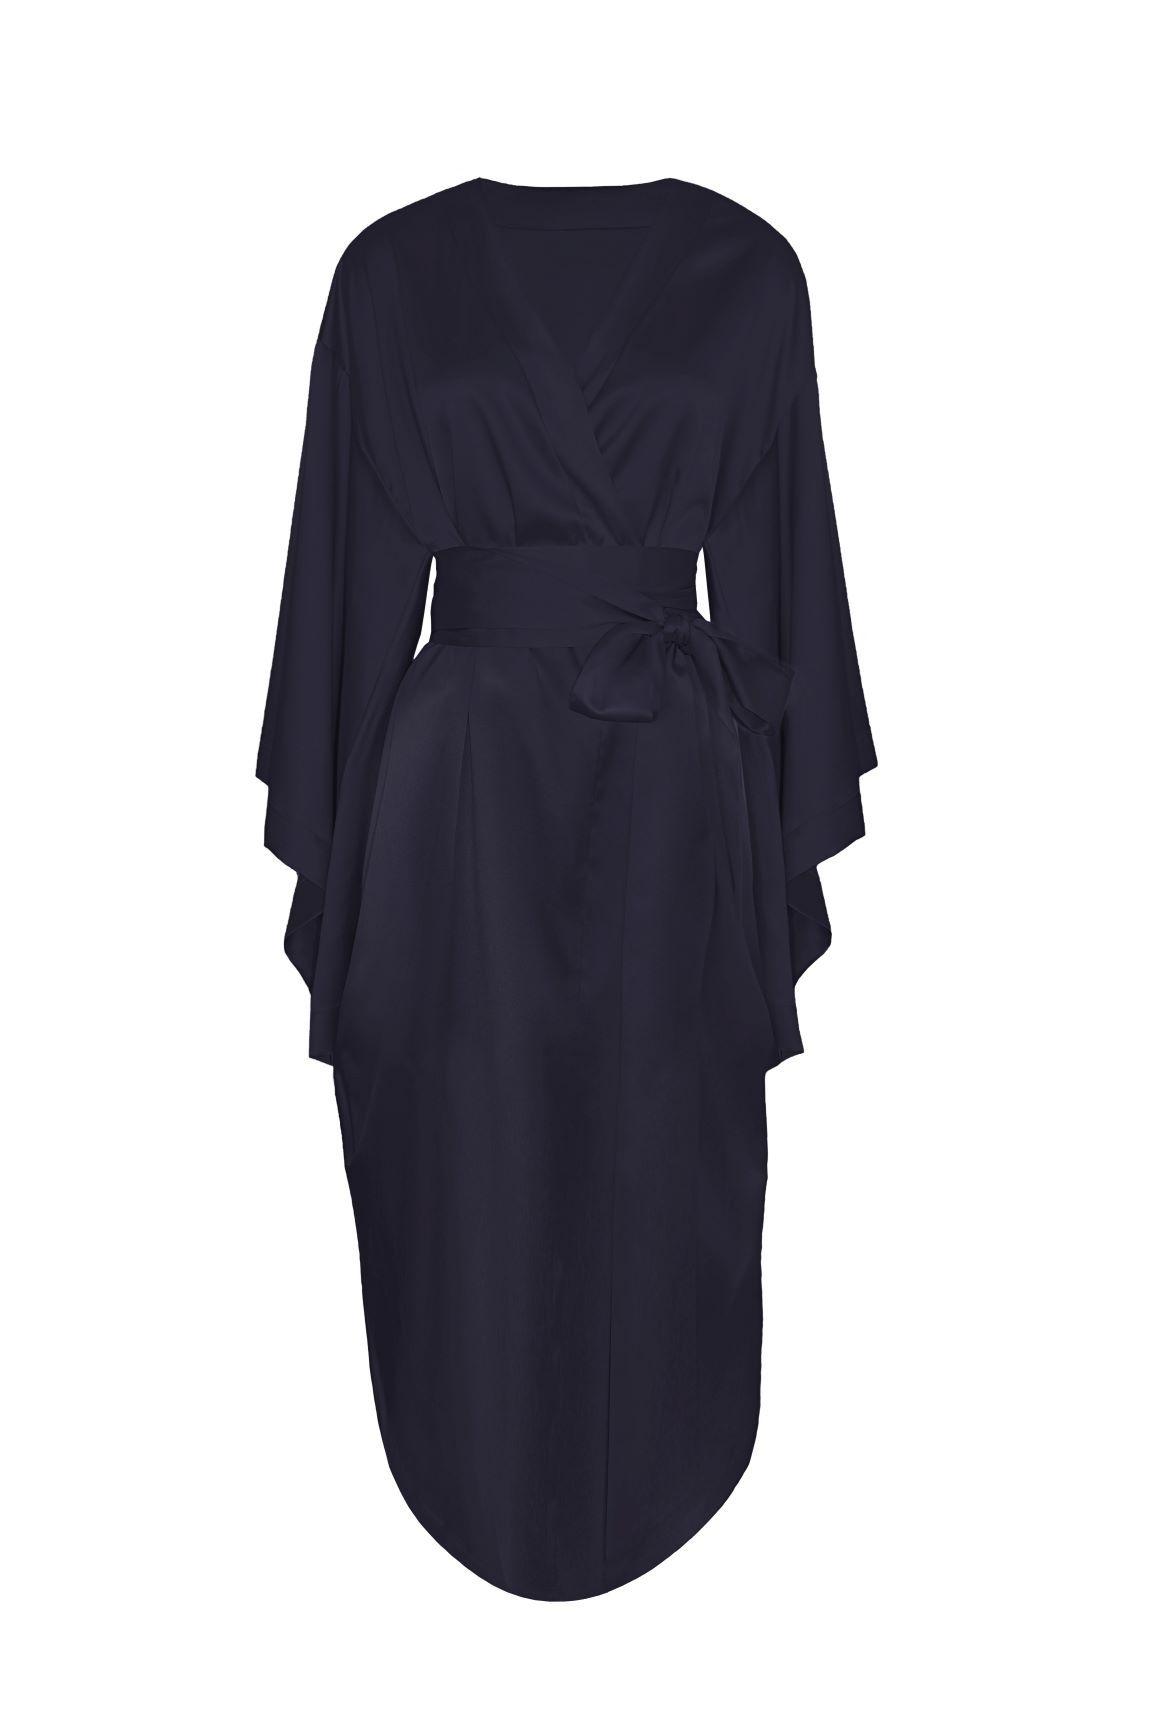 Lombard Street Robe in Charcoal - I.D. Sarrieri